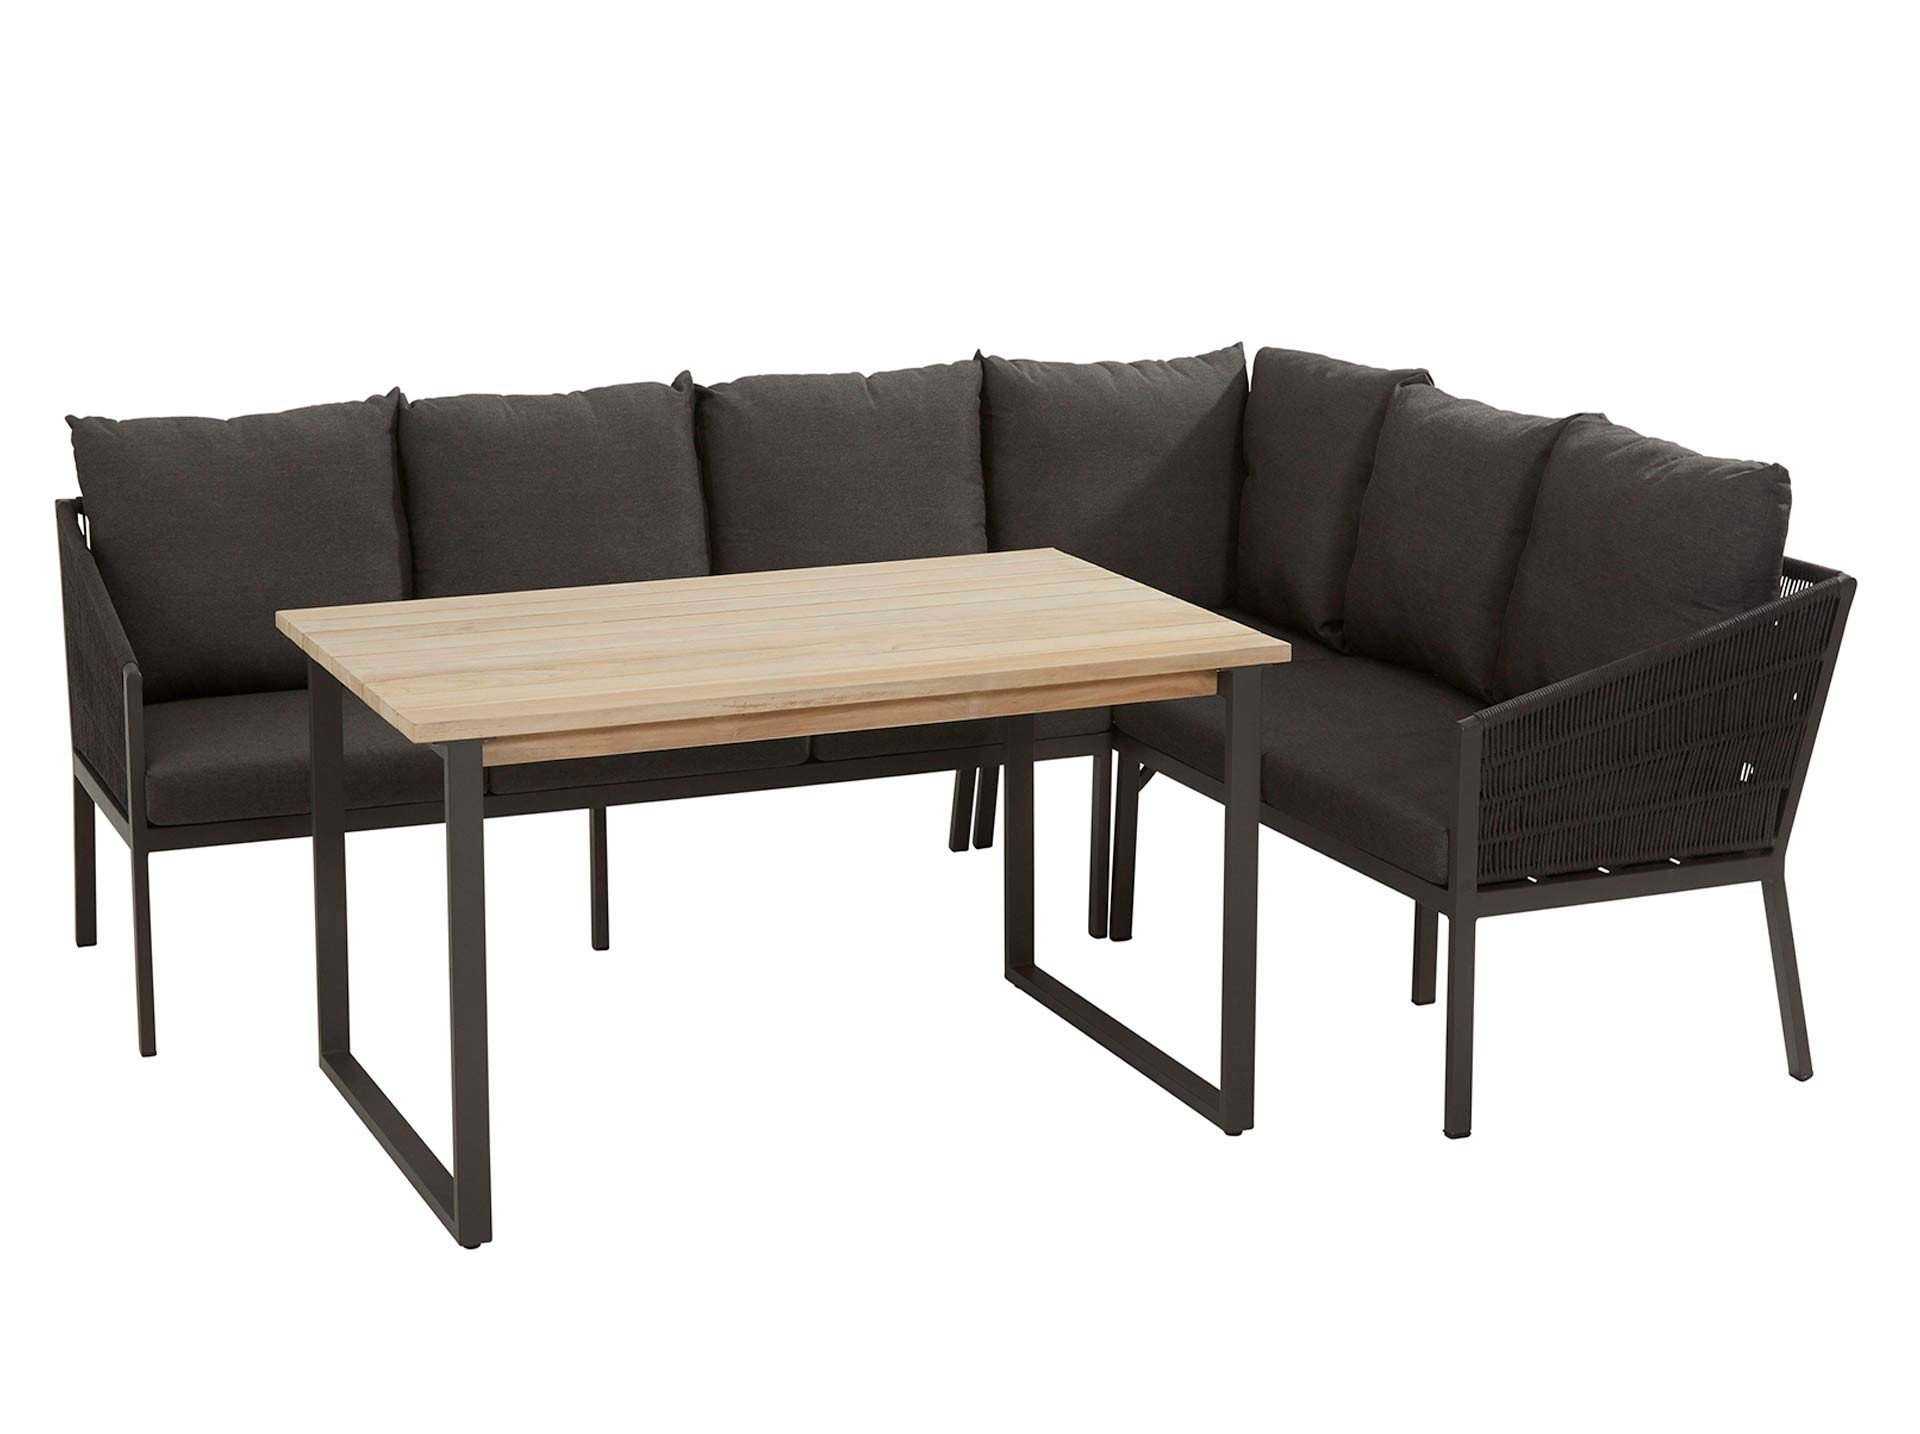 Cruz dining set 3-delig